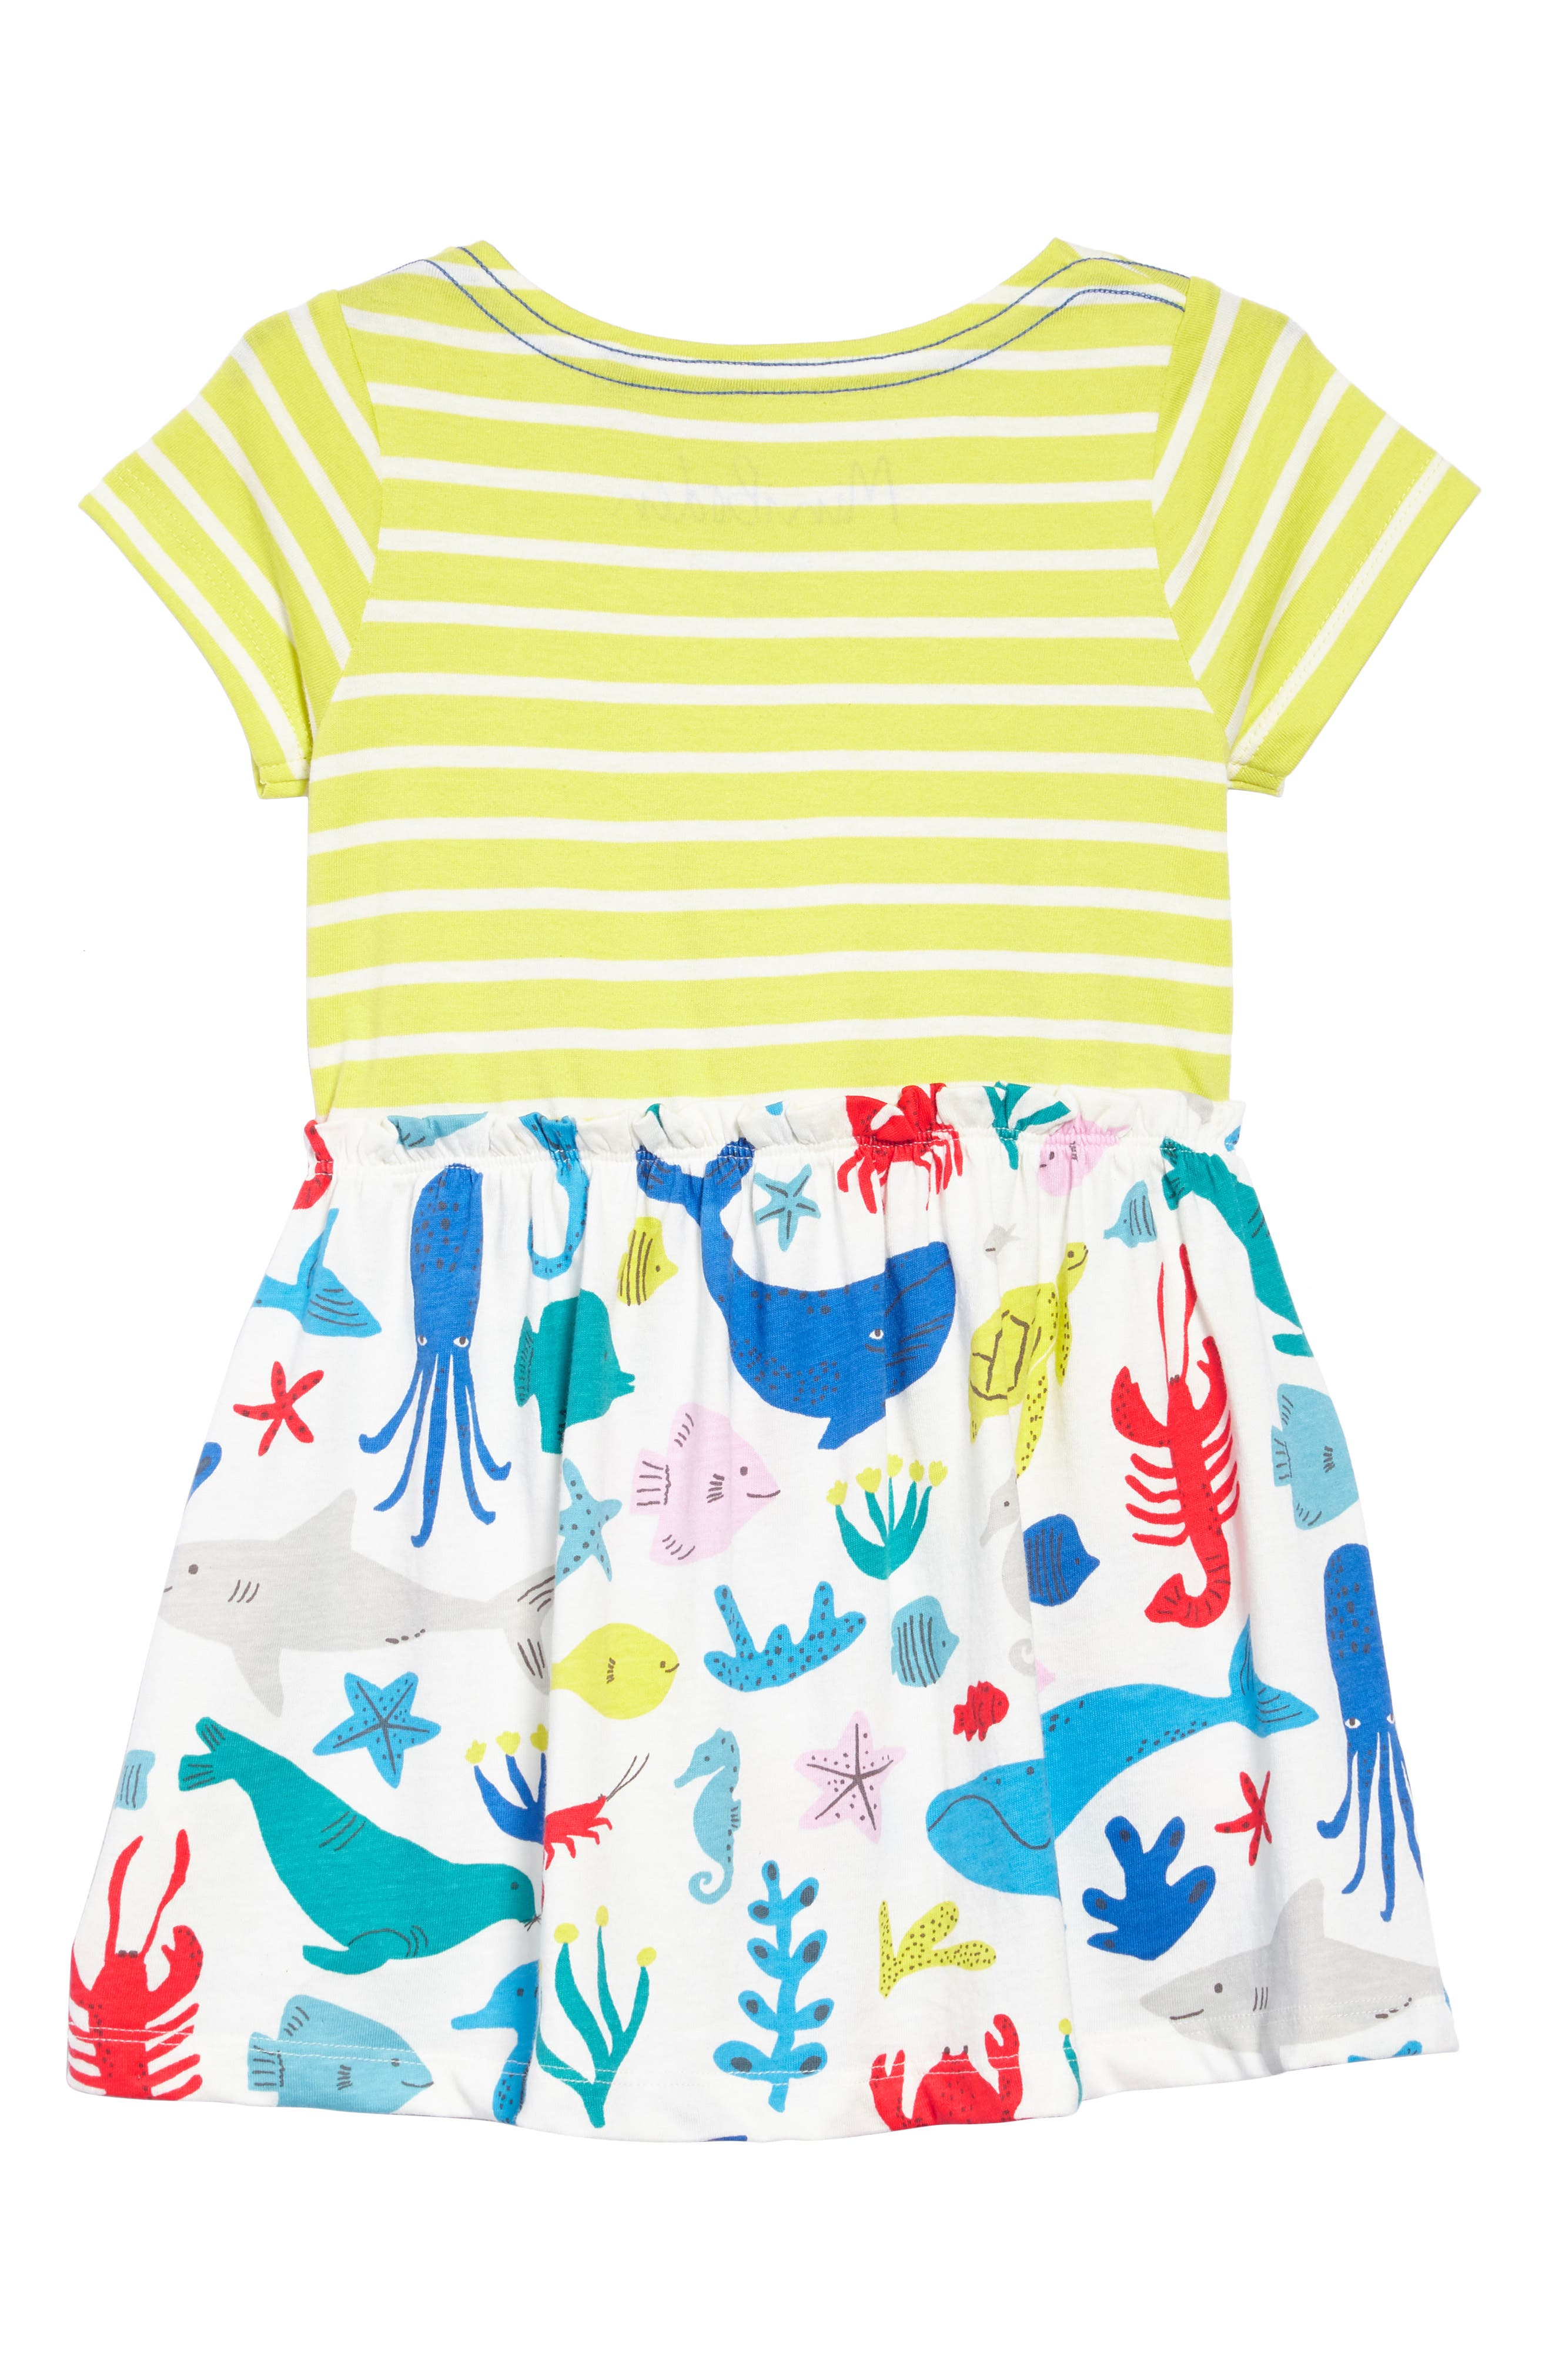 Bright Hotchpotch Jersey Dress,                             Alternate thumbnail 2, color,                             Ivoyellow/ Ivory Under The Sea